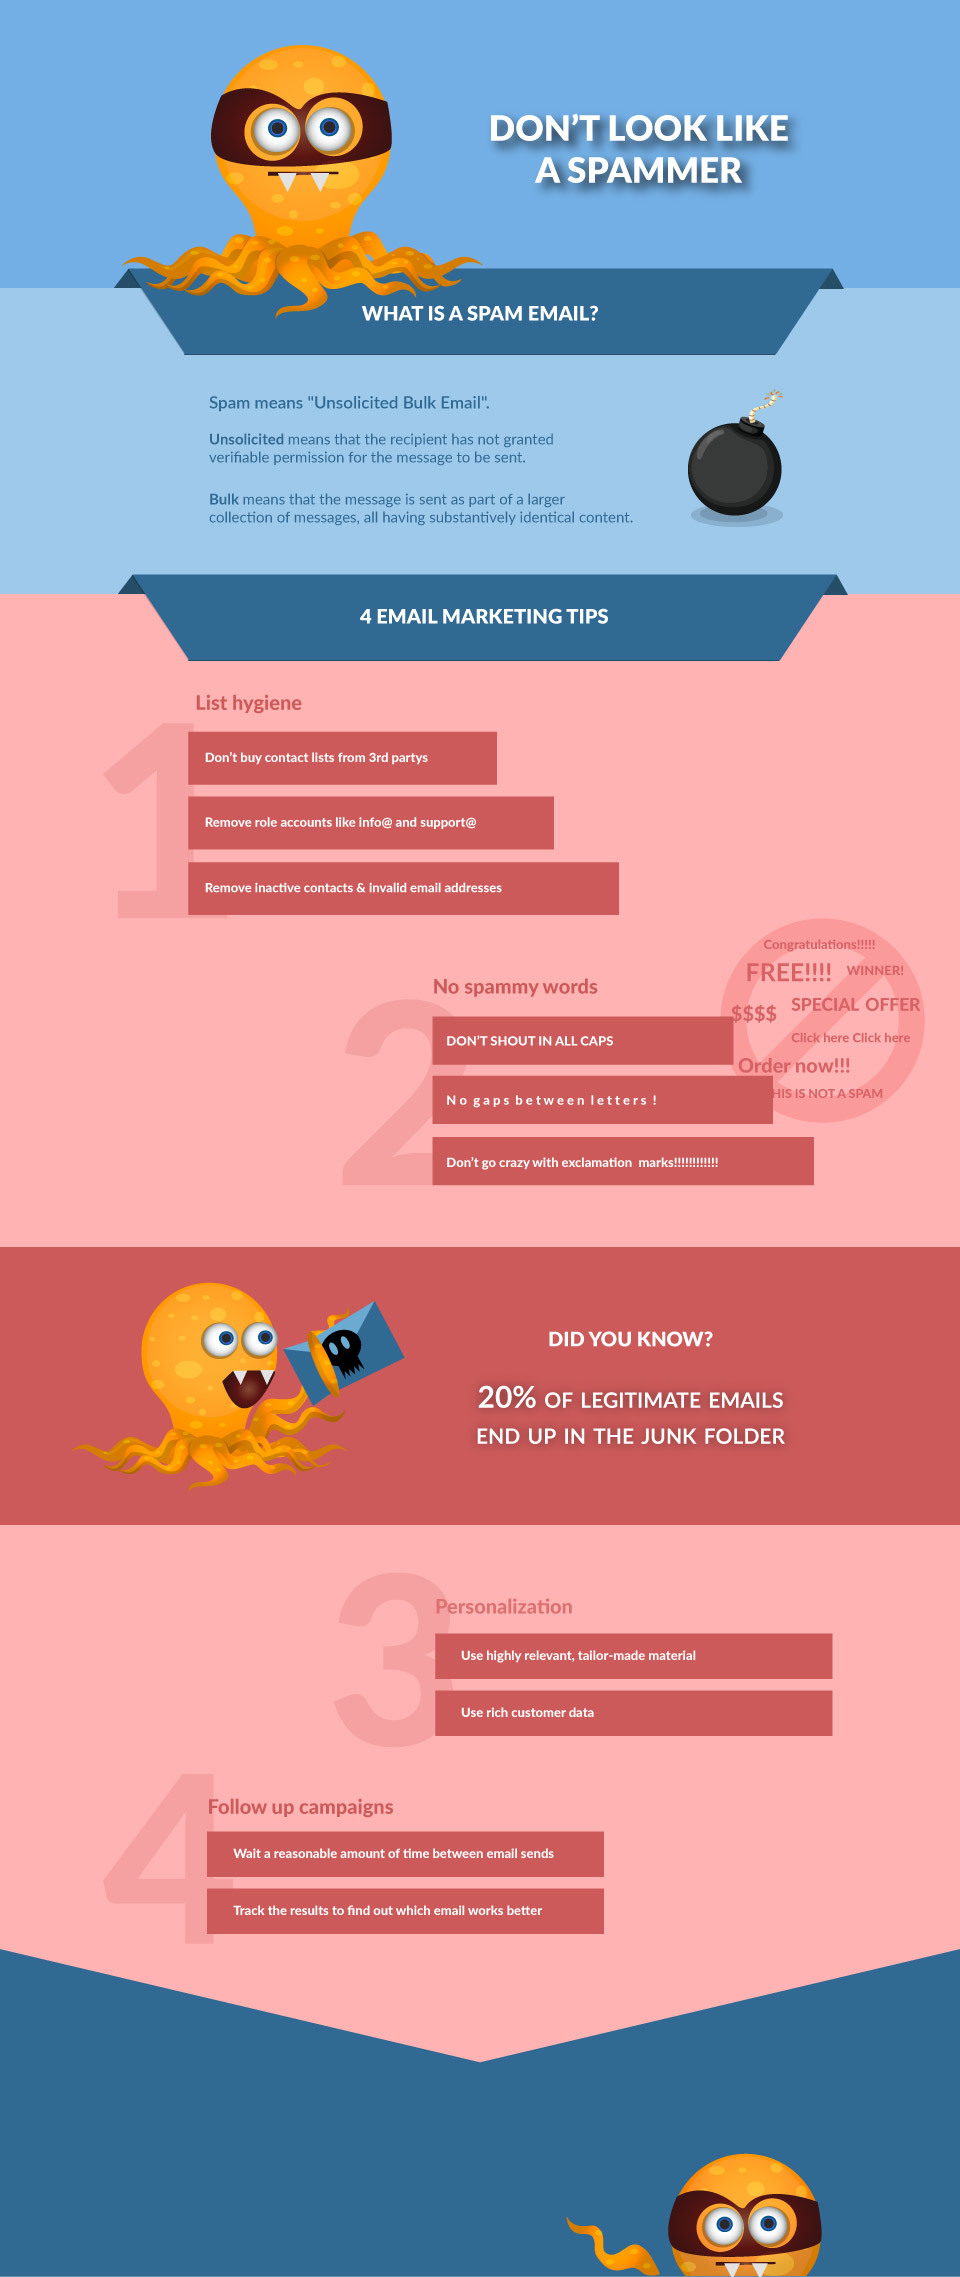 Don't be a spammer infographic